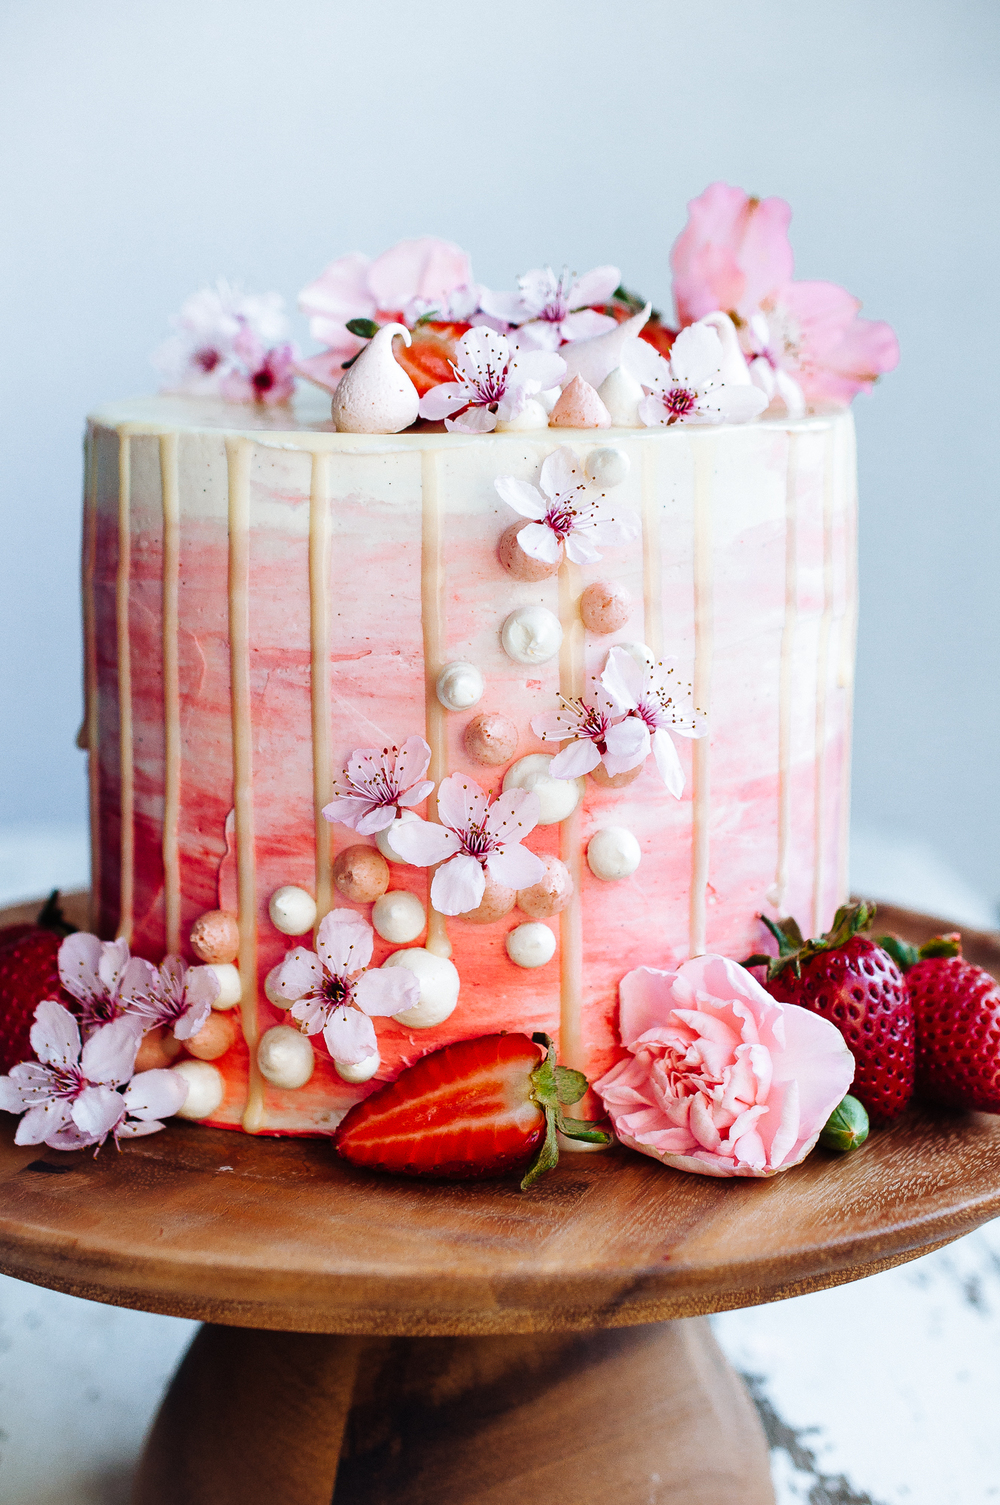 Strawberry and vanilla cake 15.jpg